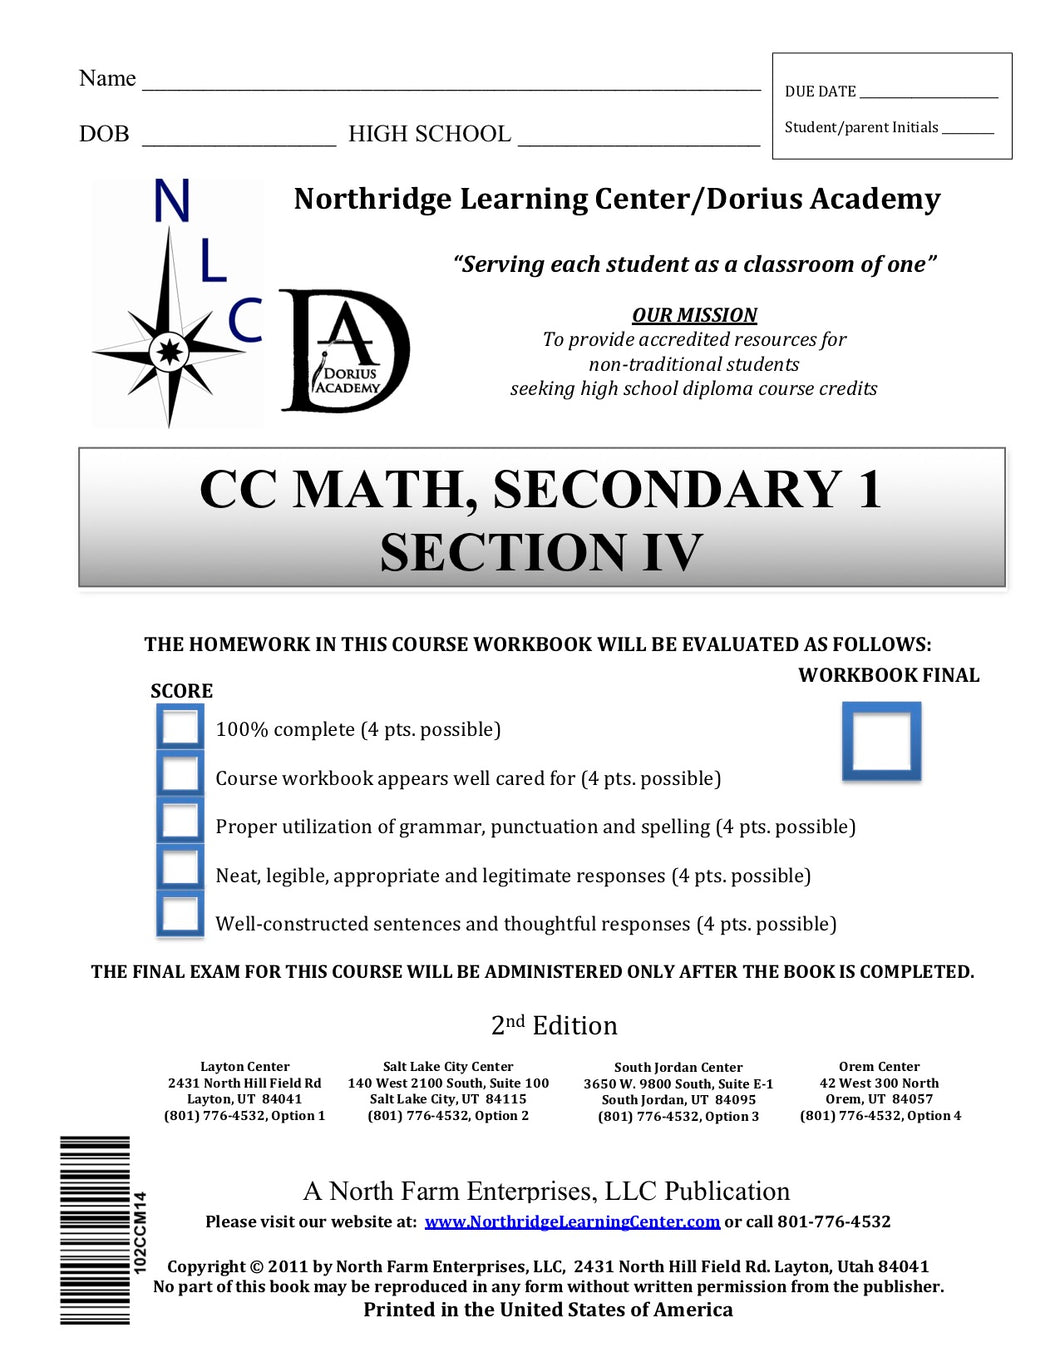 CC Math, Secondary 1, Section IV